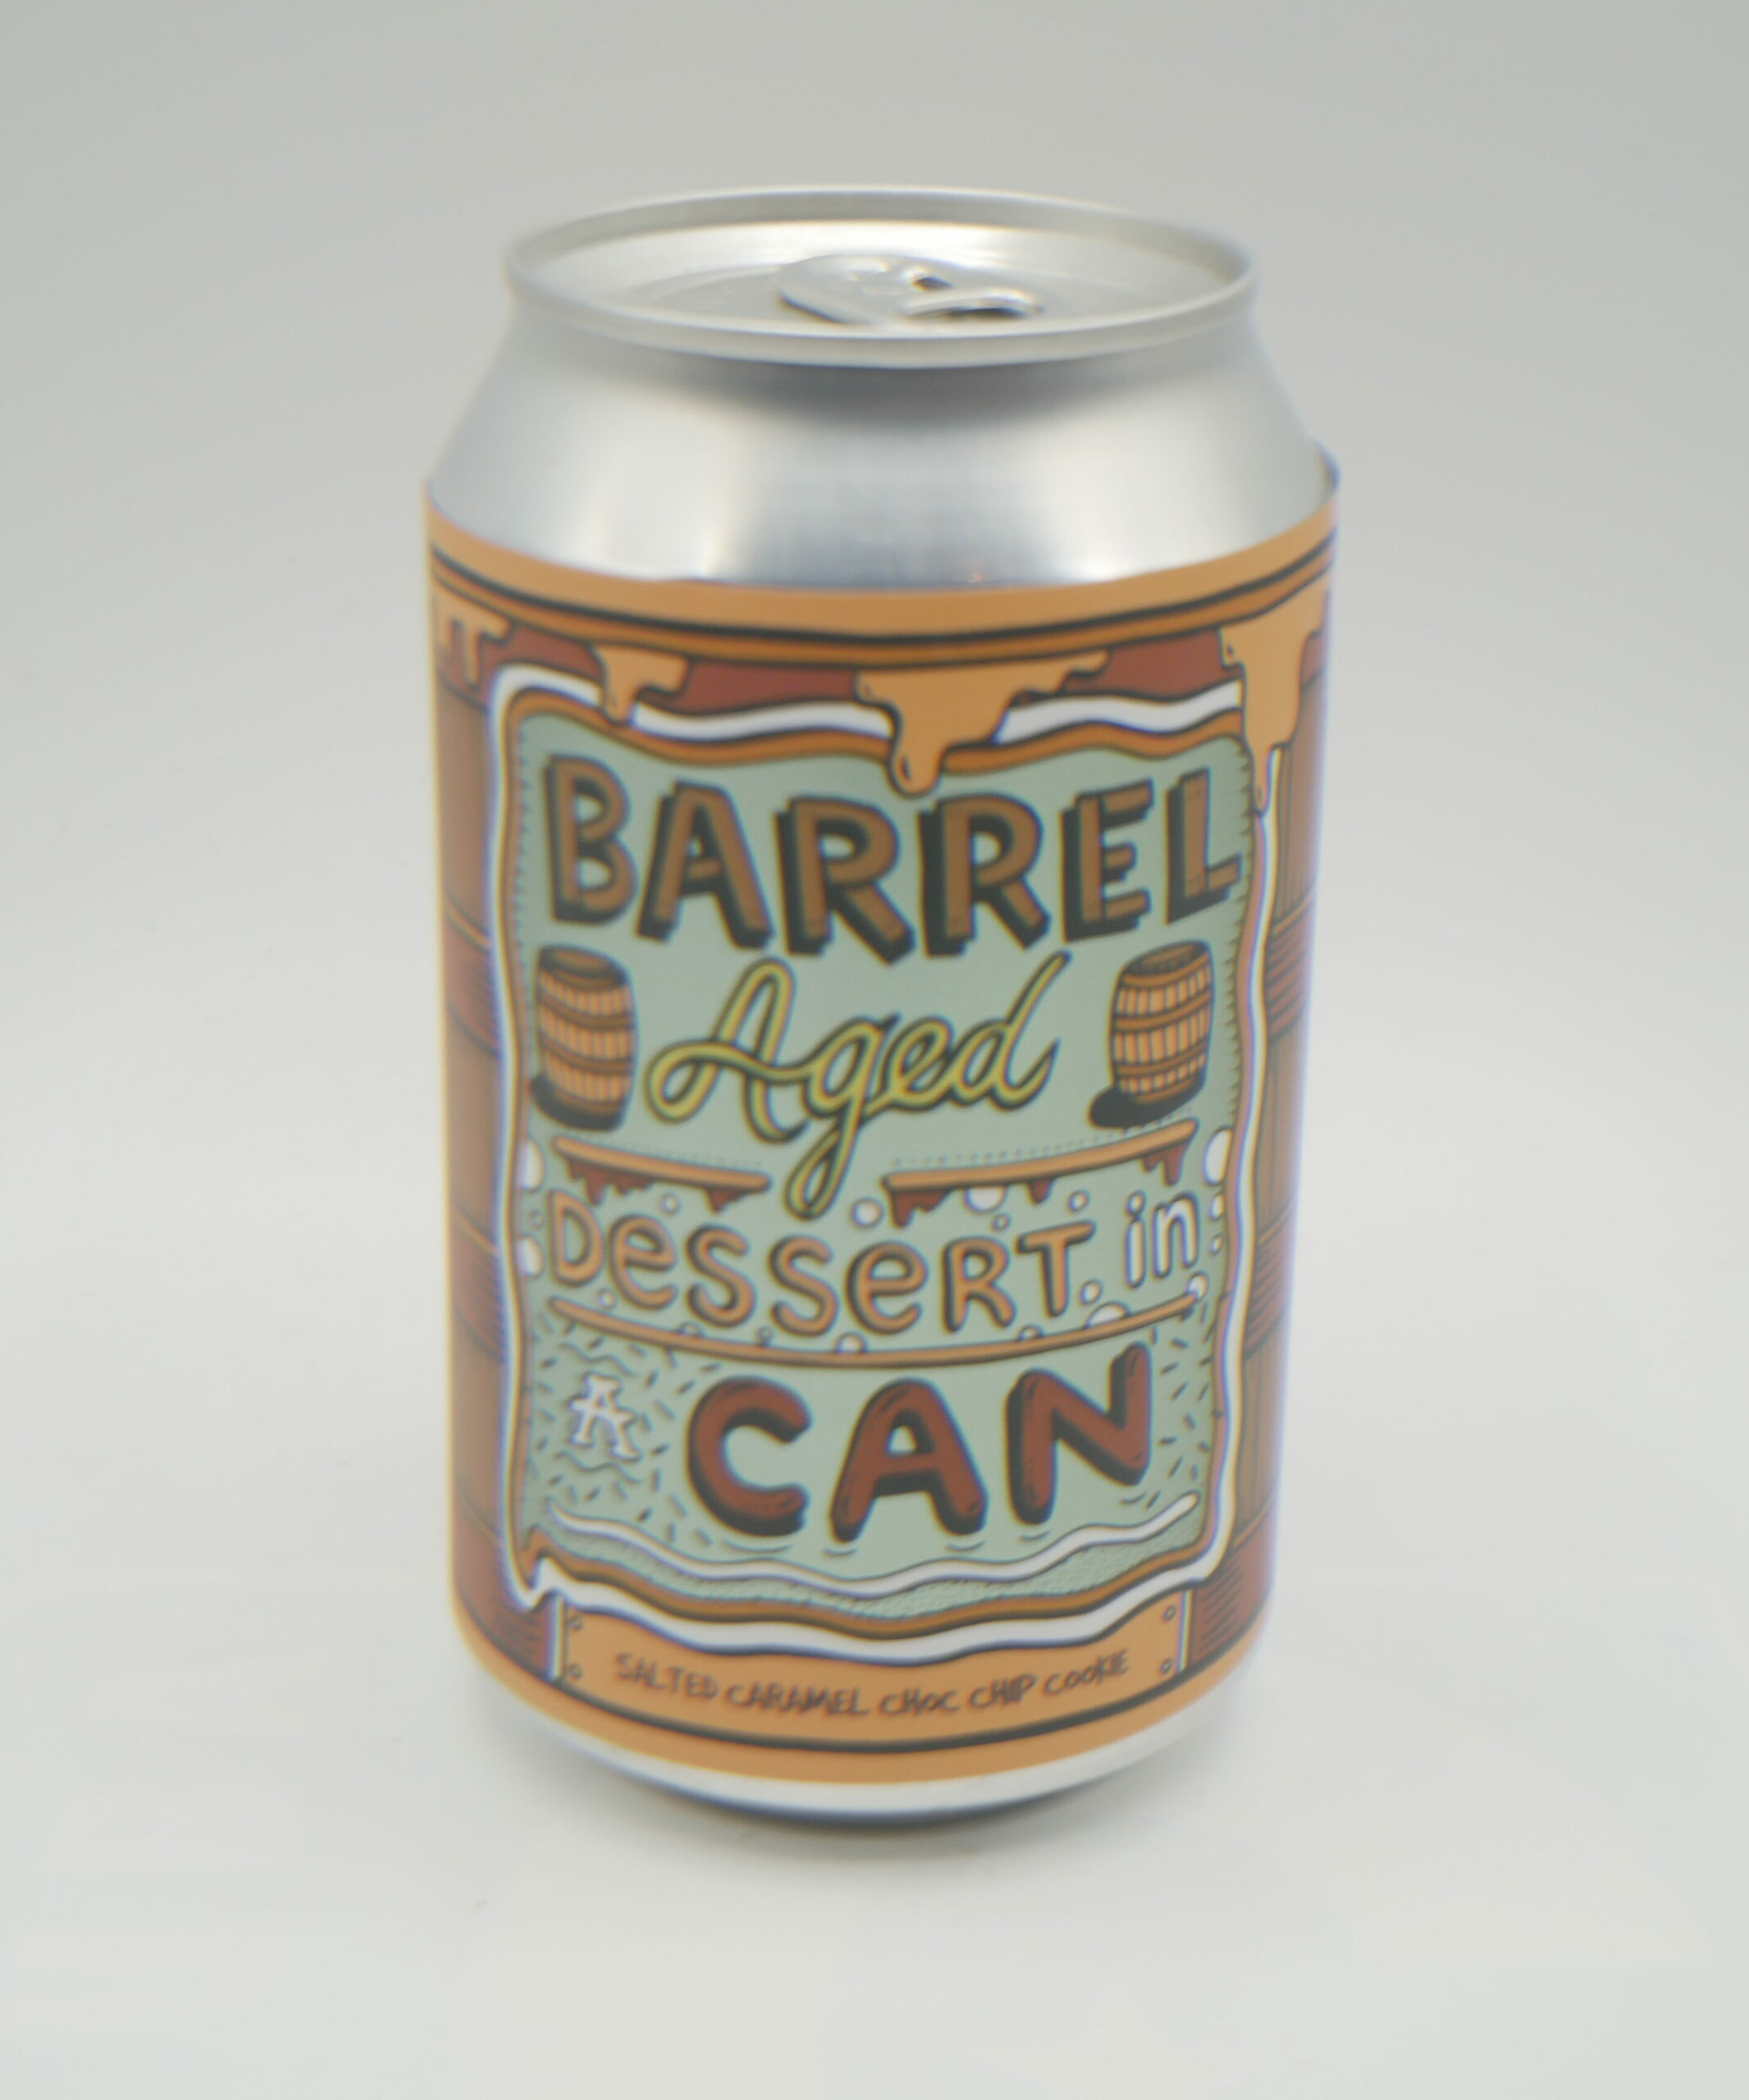 Img Barrel aged in dessert in a can salted caramel choc chip cookie